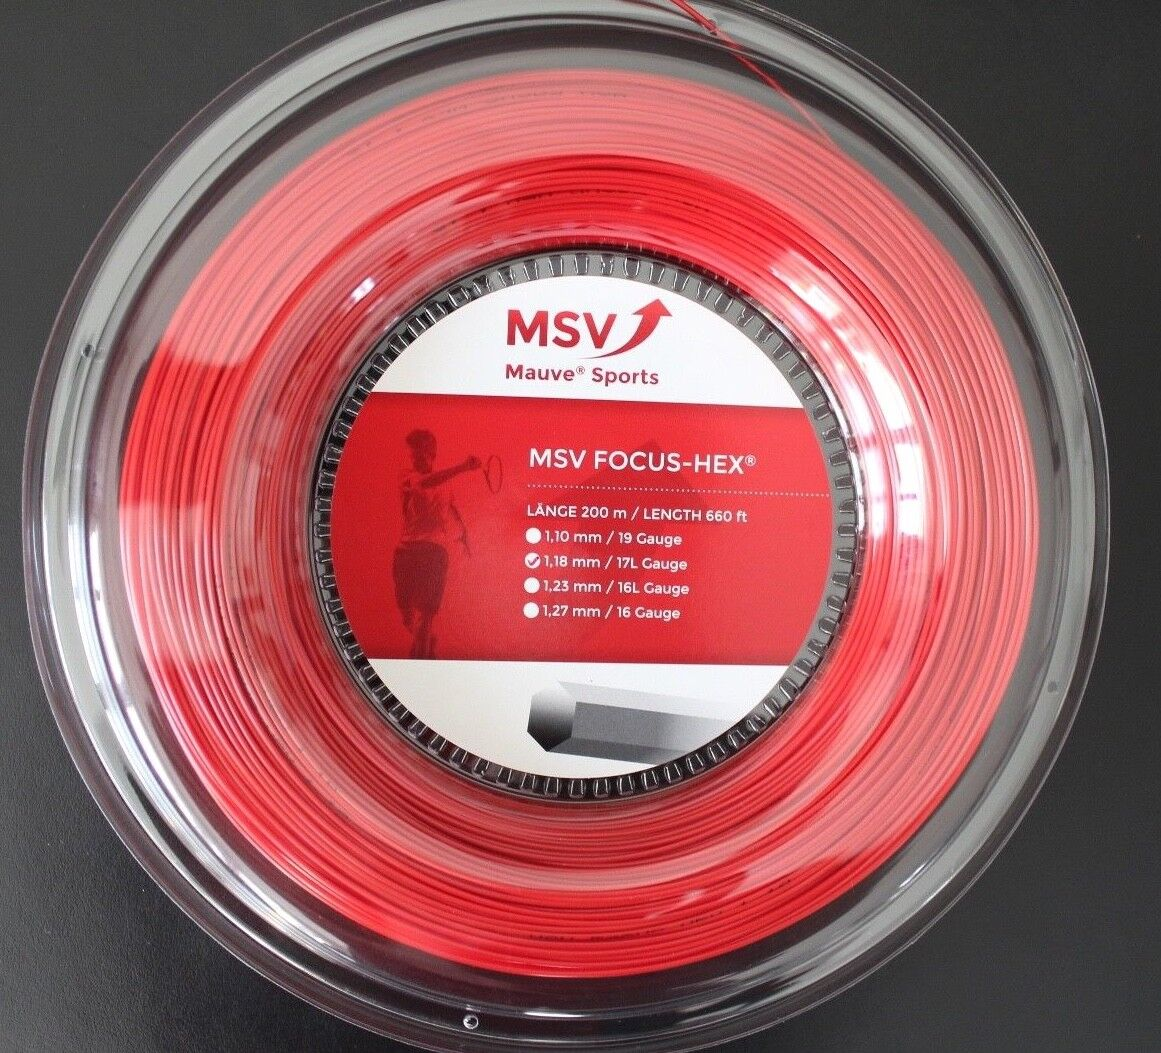 m MSV Focus Hex 200 m m m Rolle Farbe Rot  ø 1.18, 1.23, 1.27 mm 86bedc